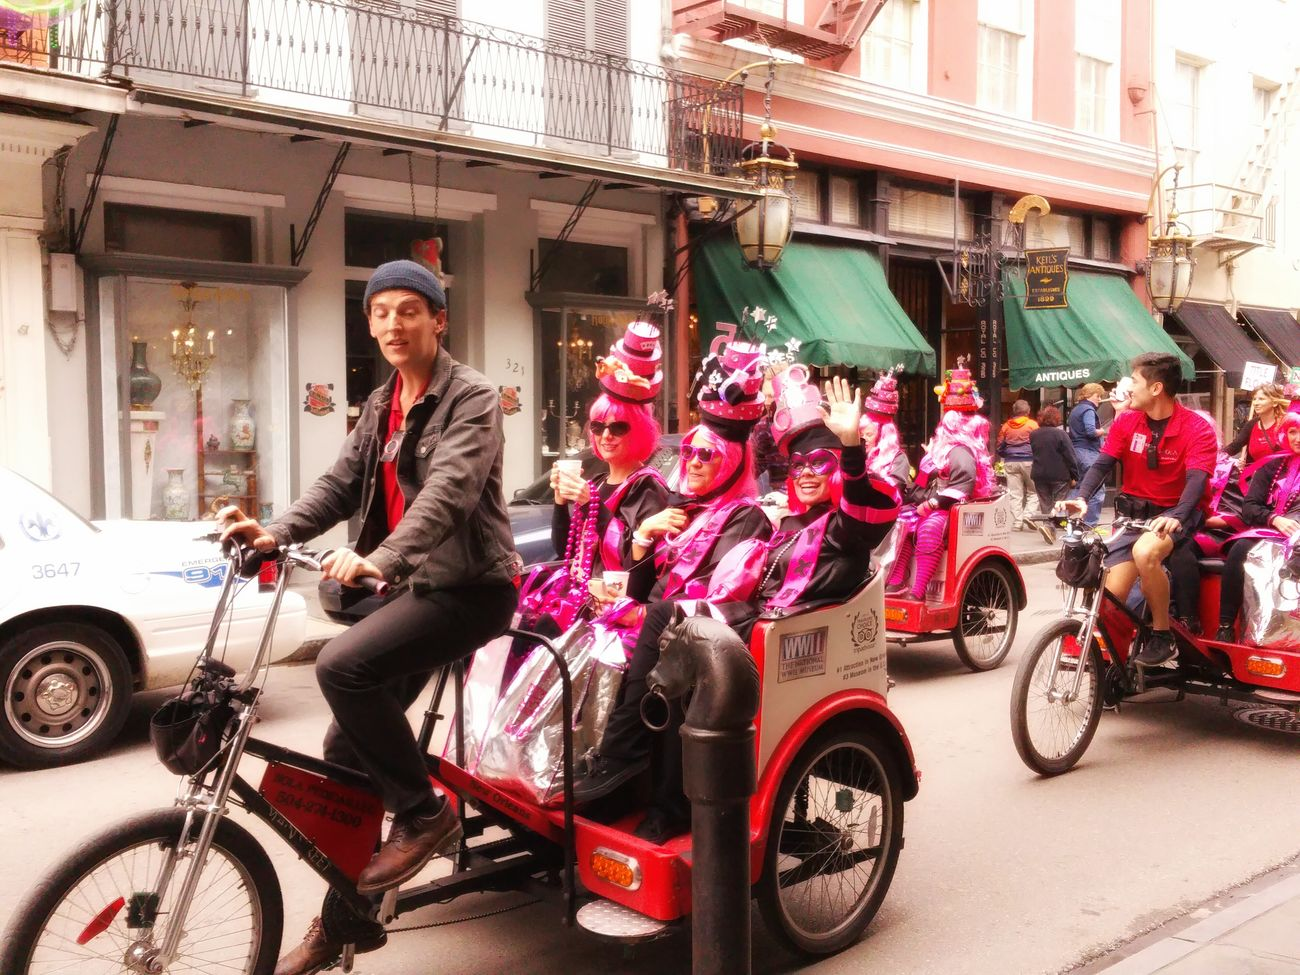 Pedicabs on Royal Street in New Orleans, LA during Mardi Gras Time Street Photography Colors Of Carnival PARADE SEASON Festive Riding Round French Quarter Pink Wig Hats Waving